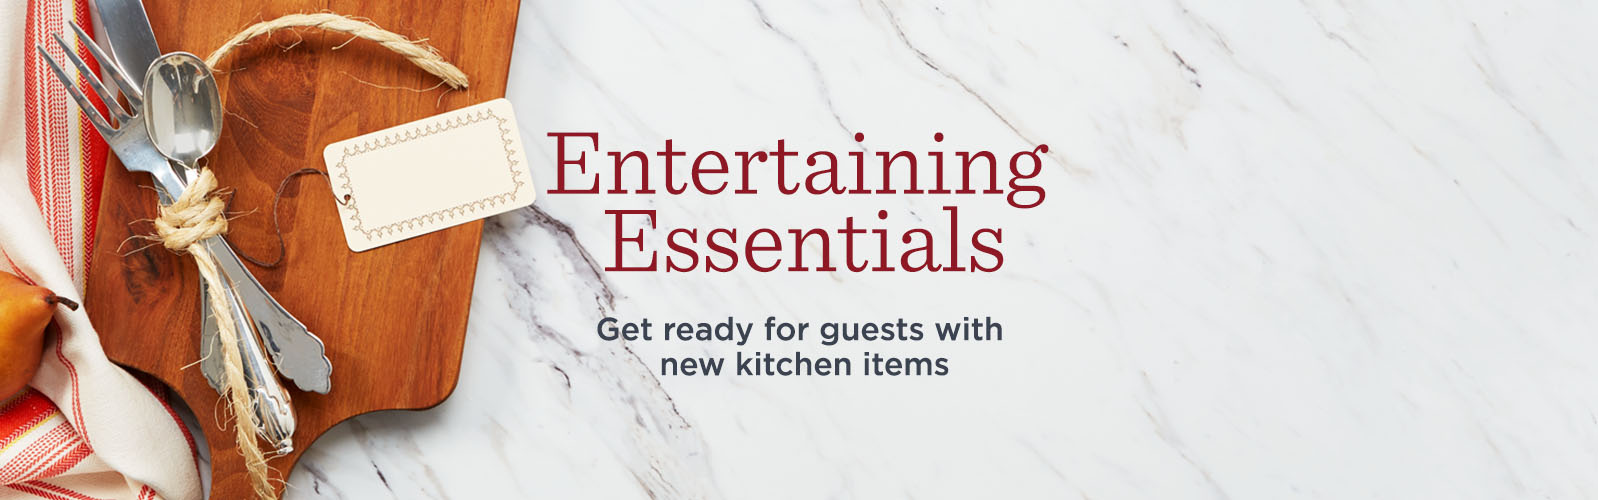 Entertaining Essentials - Get ready for guests with new kitchen items